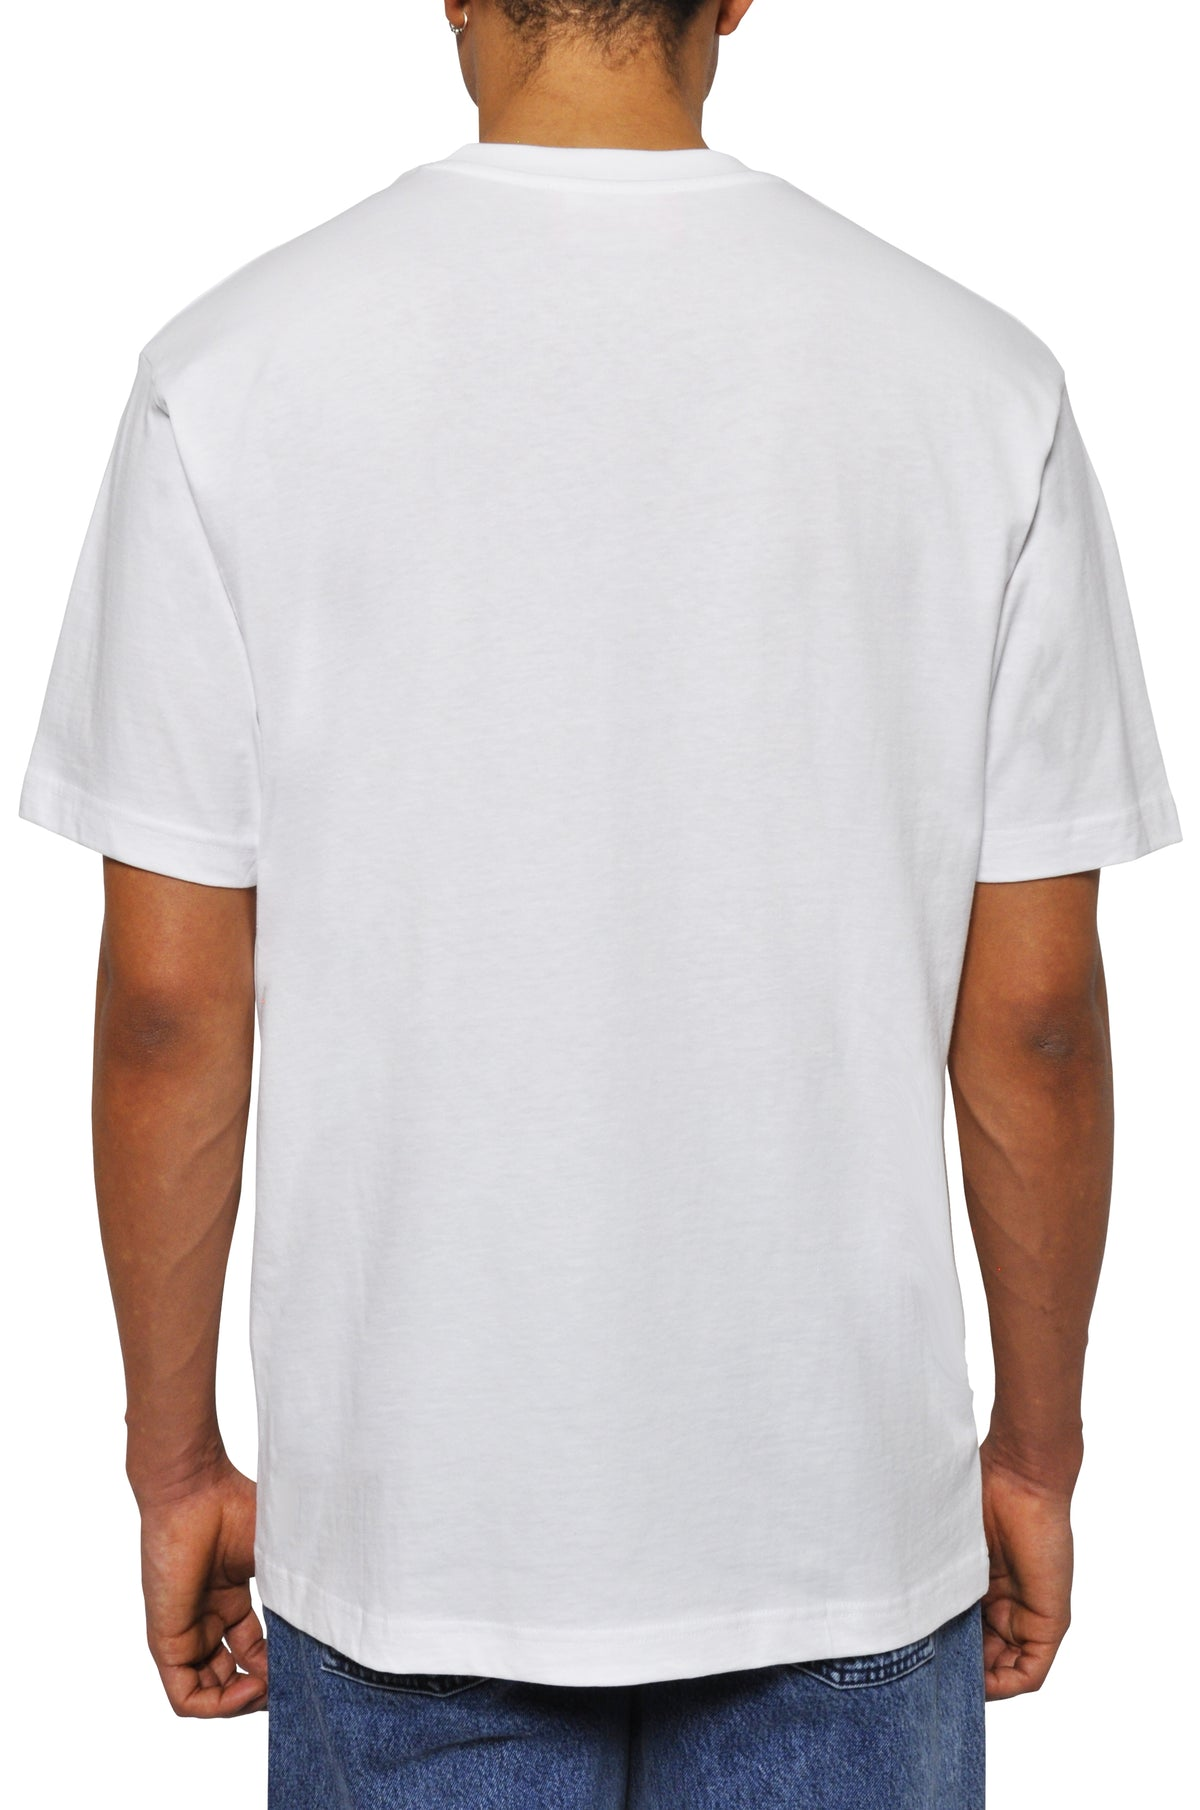 "032c LoveSexDreams ""Freed0m"" T-Shirt White - 032c"